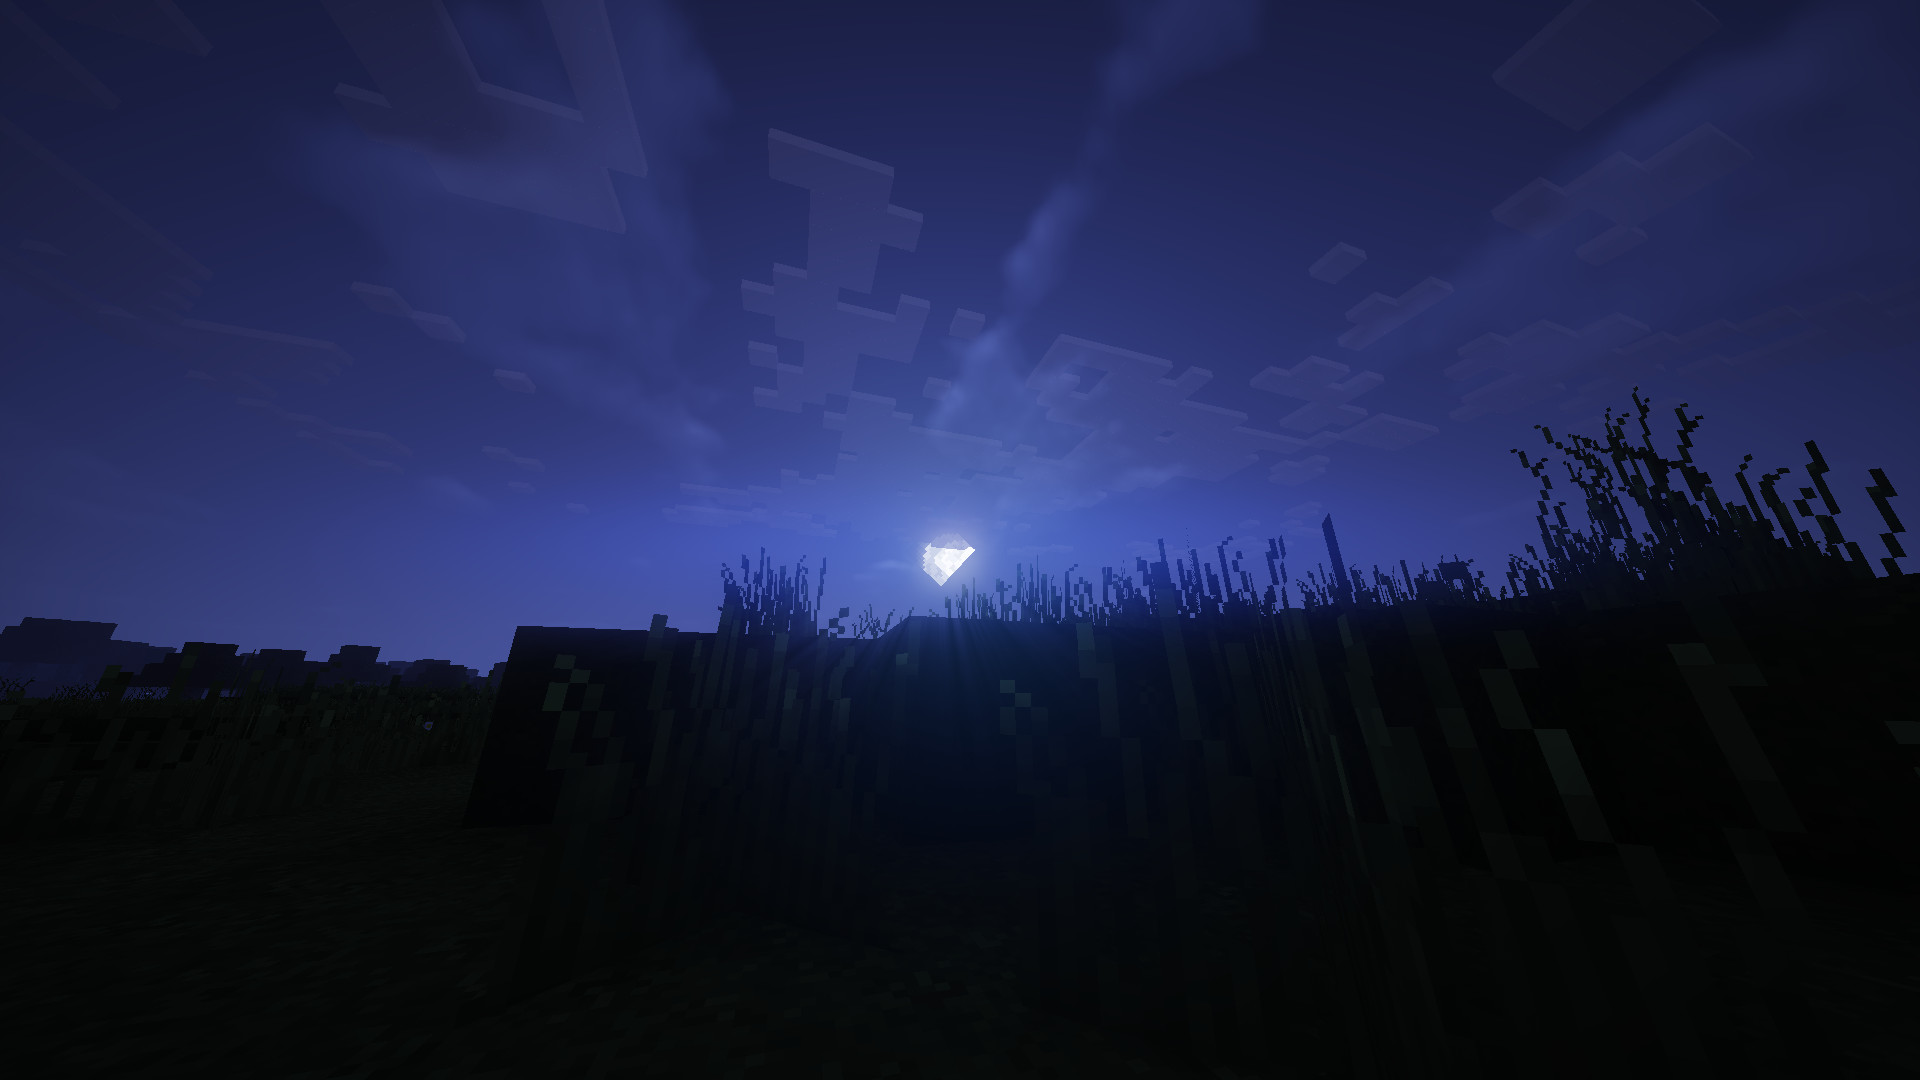 Res: 1920x1080, Minecraft Ultra Shaders Wallpapers 1080p HD (40) - Album on Imgur